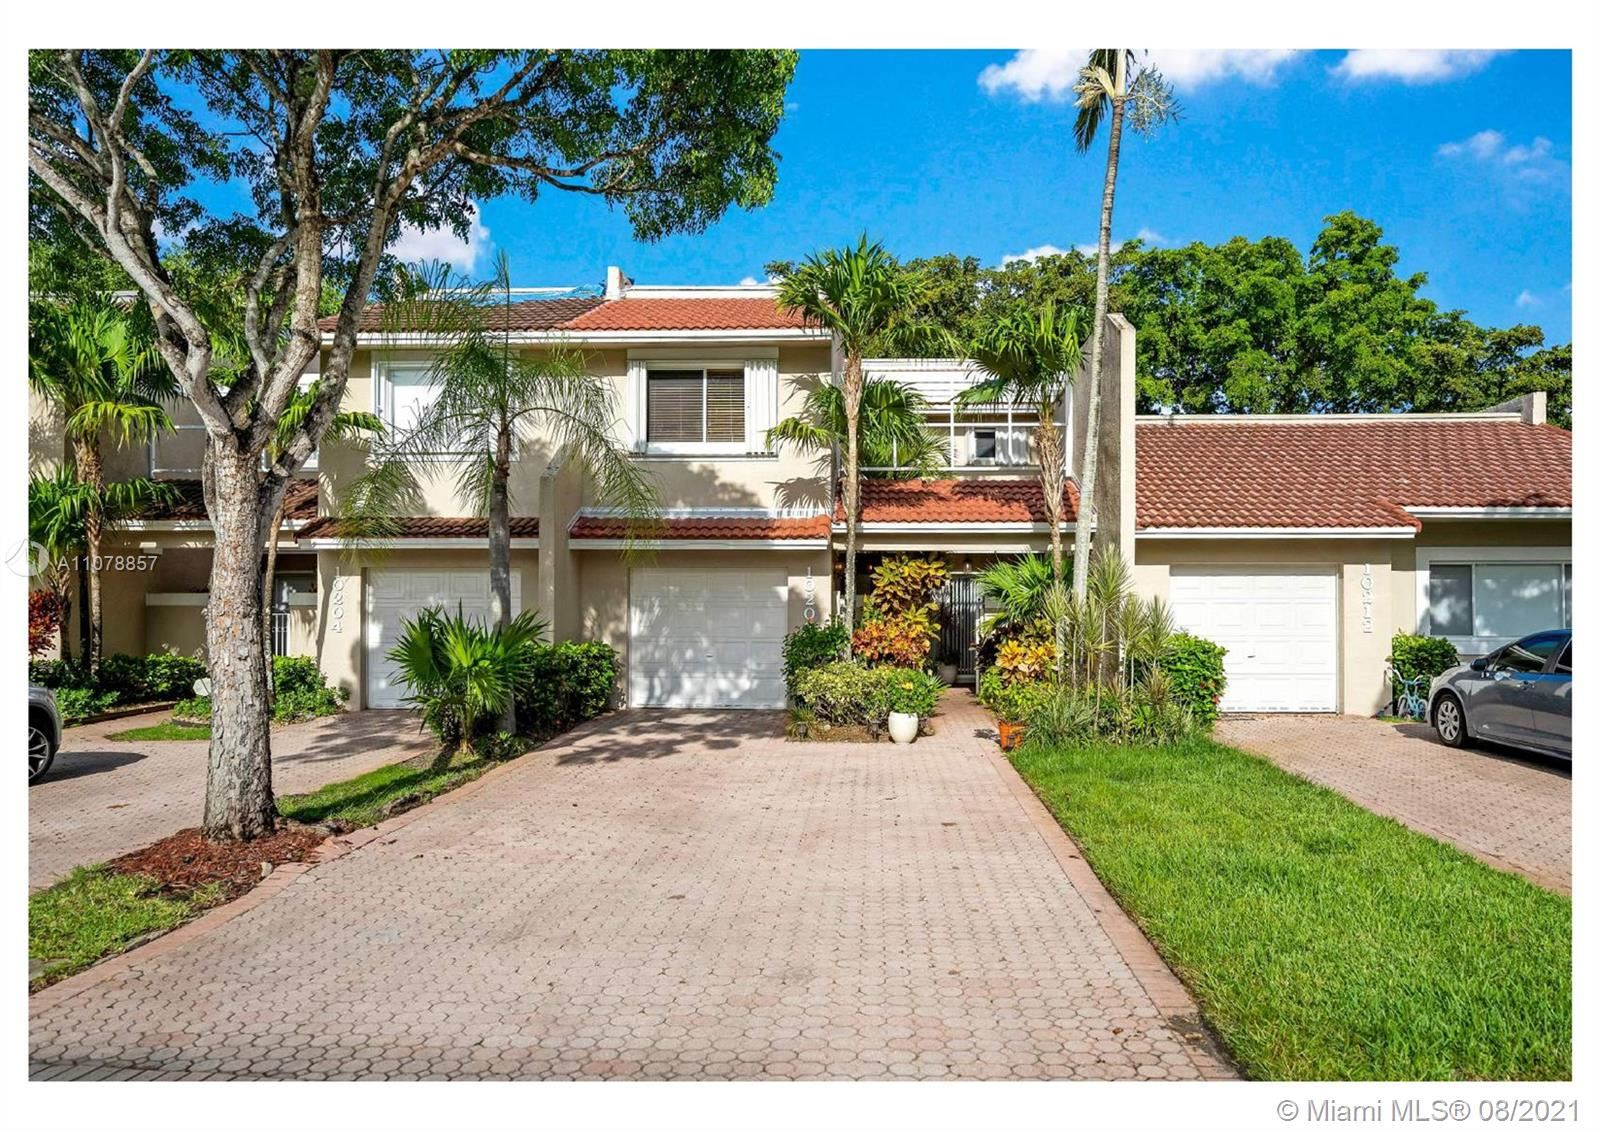 10208 NW 52nd Ter, Doral, FL 33178 - #: A11078857